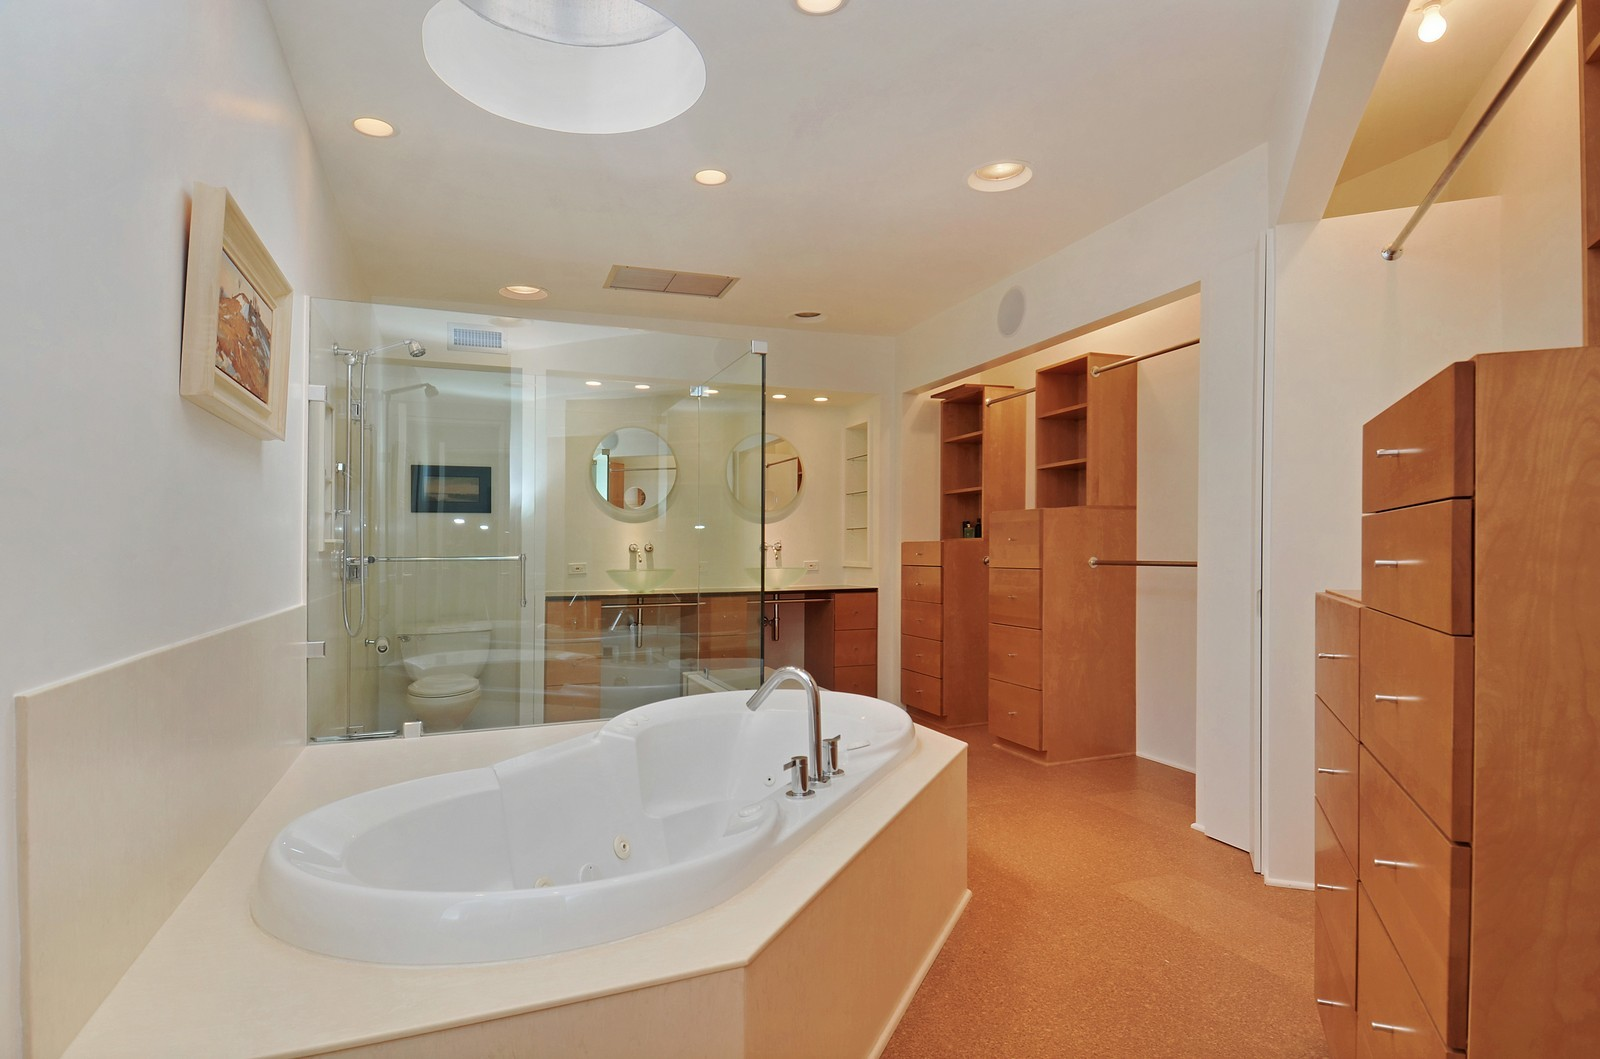 Real Estate Photography - 425 Woodside Ave, Hinsdale, IL, 60521 - Master Bath